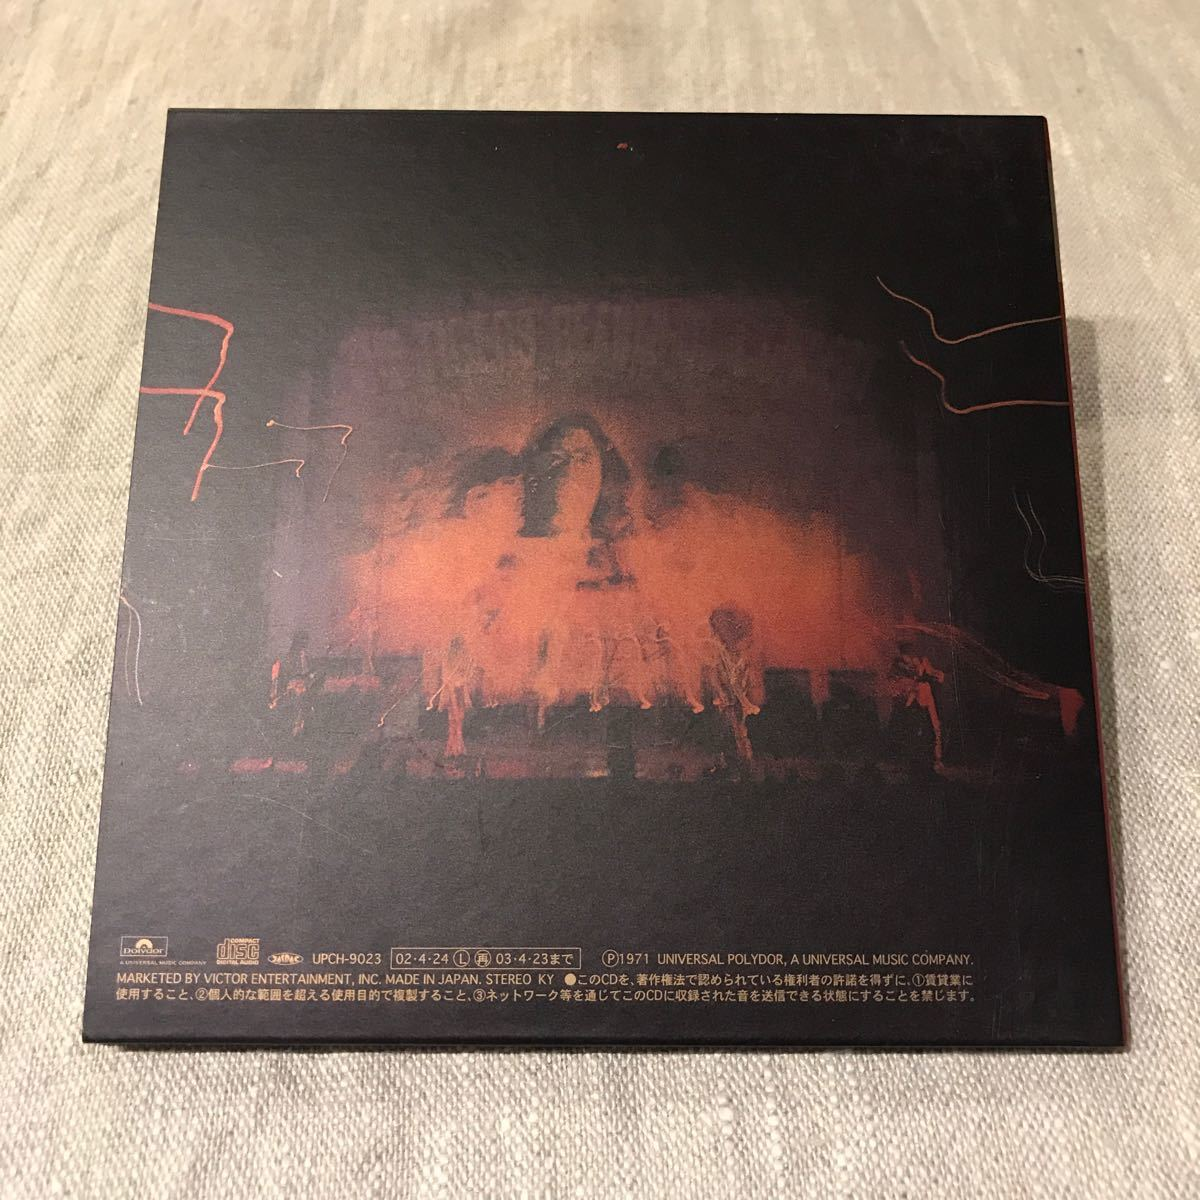 THE TIGERS FINALE CD ザ・タイガース フィナーレ